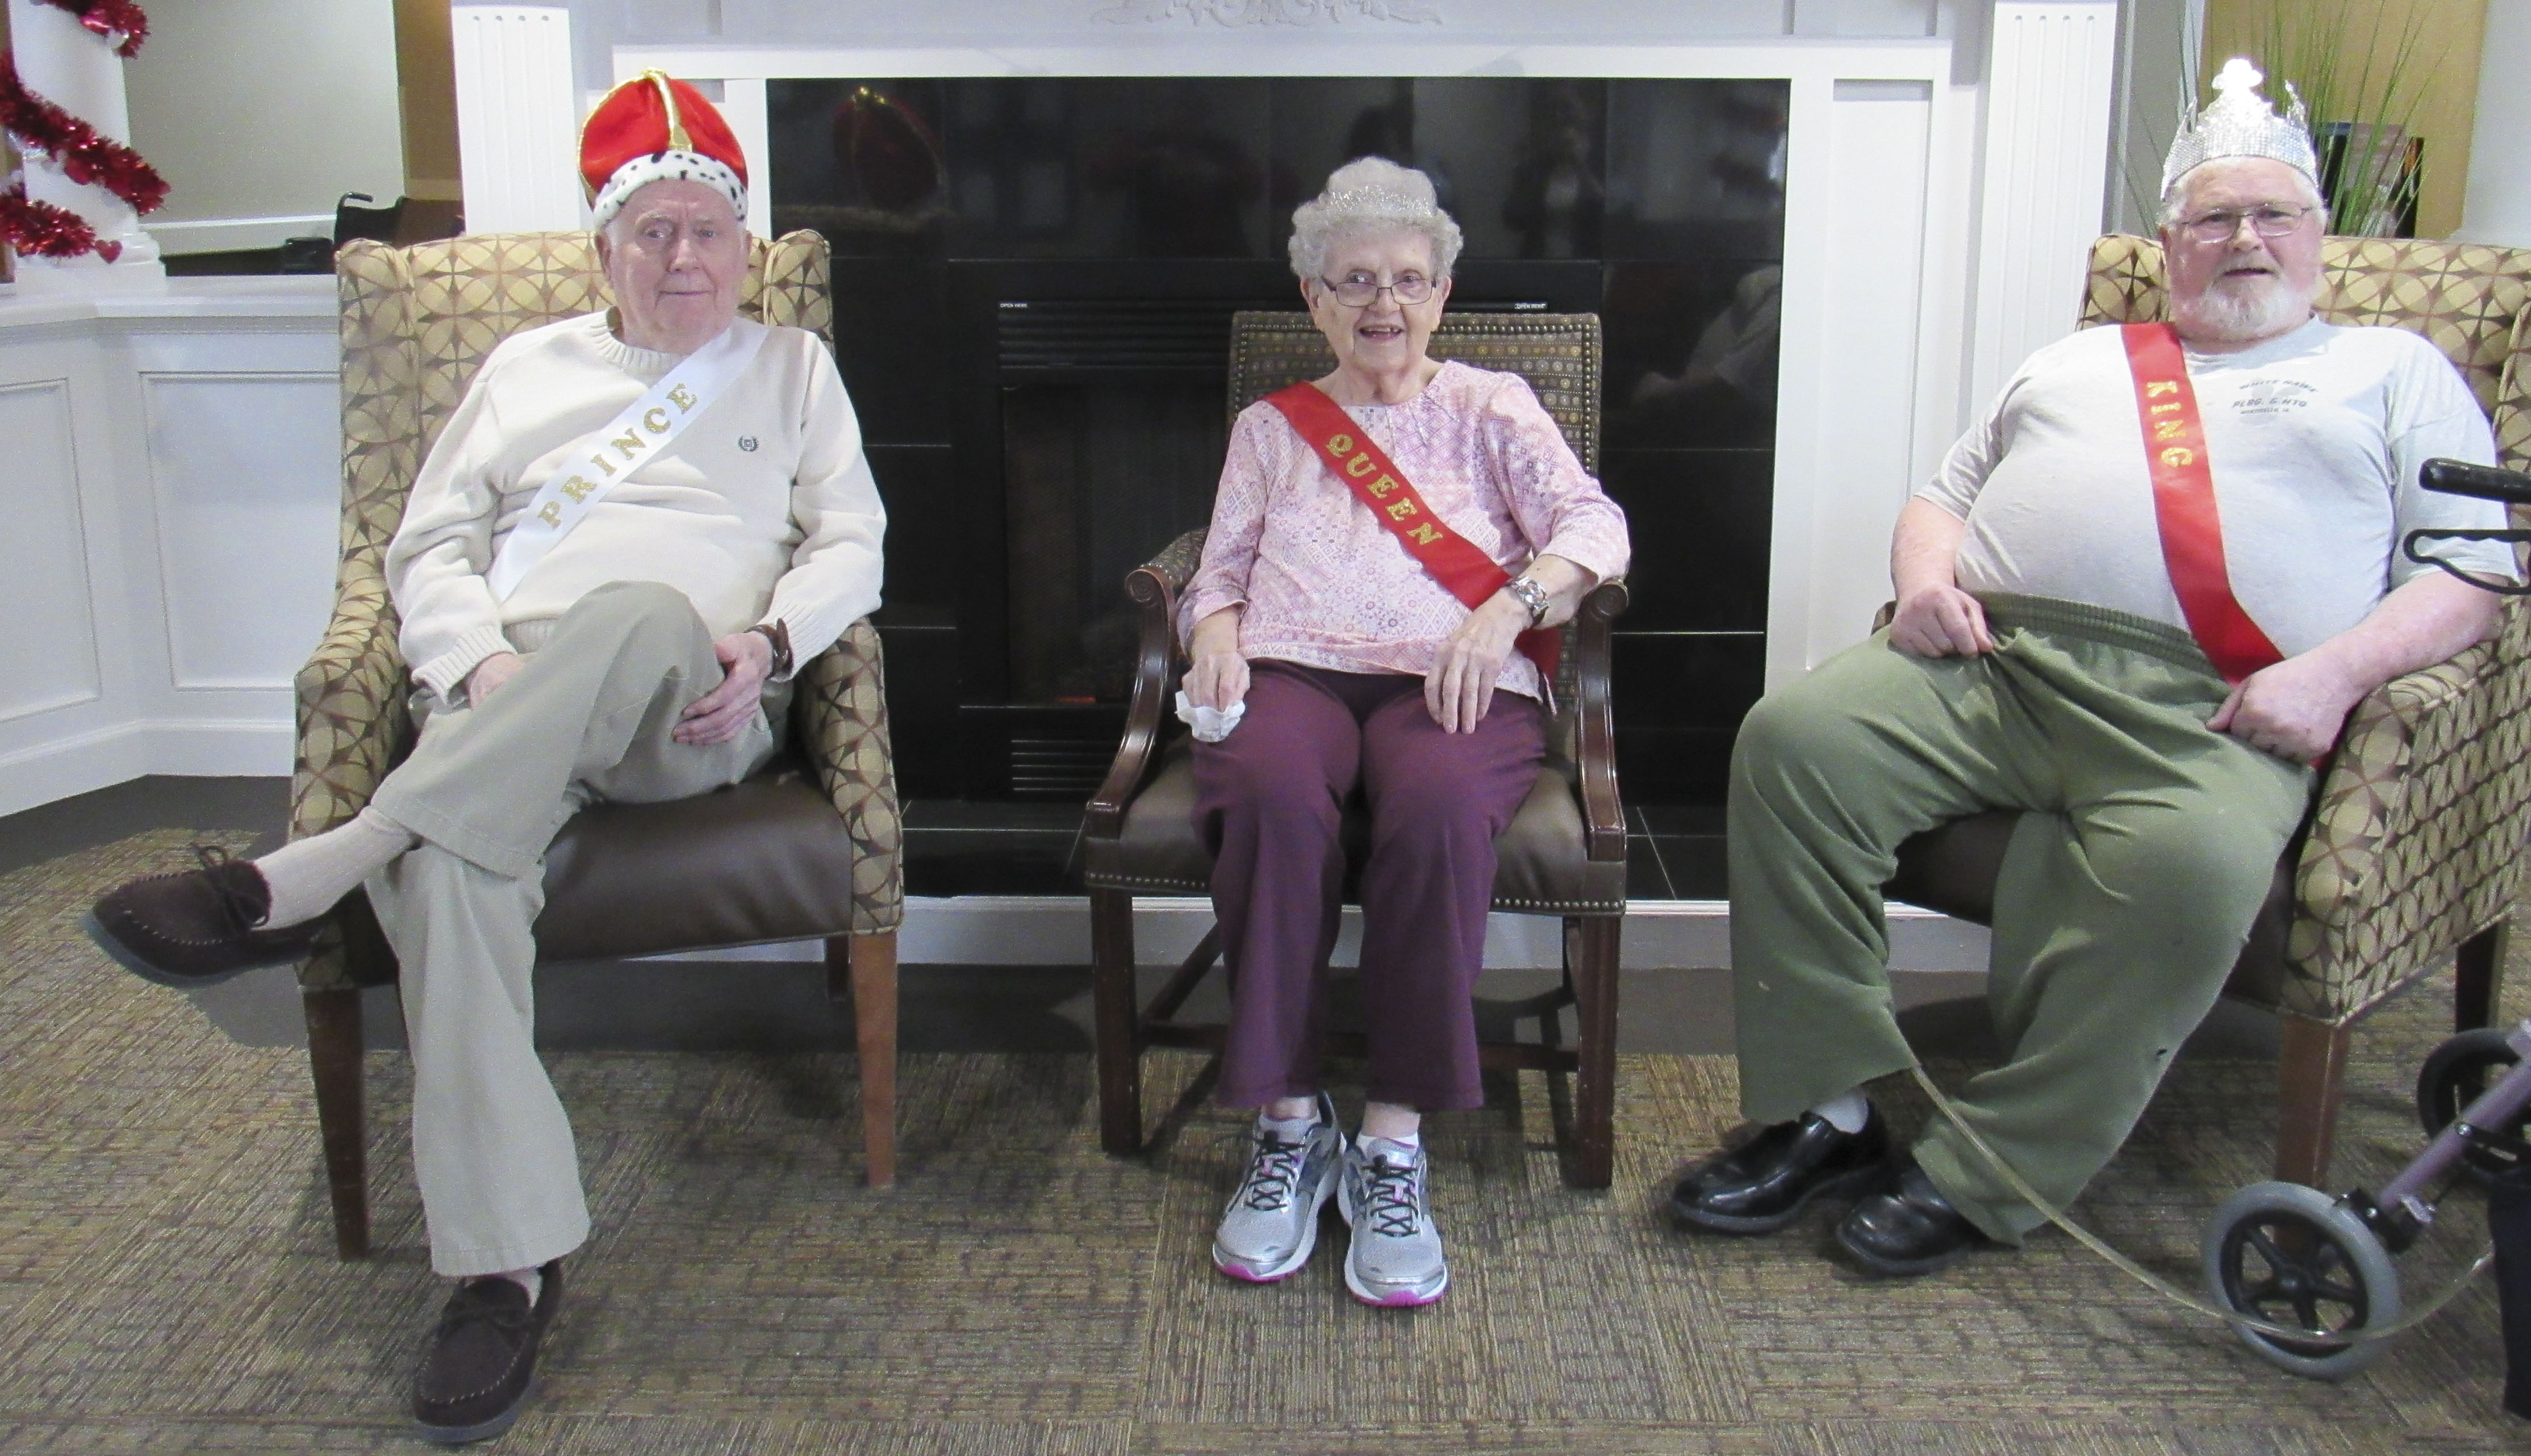 Every Valentine's Day, Monticello Nursing and Rehab Center crowns royalty among the residents. From left are Prince John Bell, Queen Norma McDonell, and King John White. Not pictured is Princess Marie Bartels. (Photo by Kim Brooks)